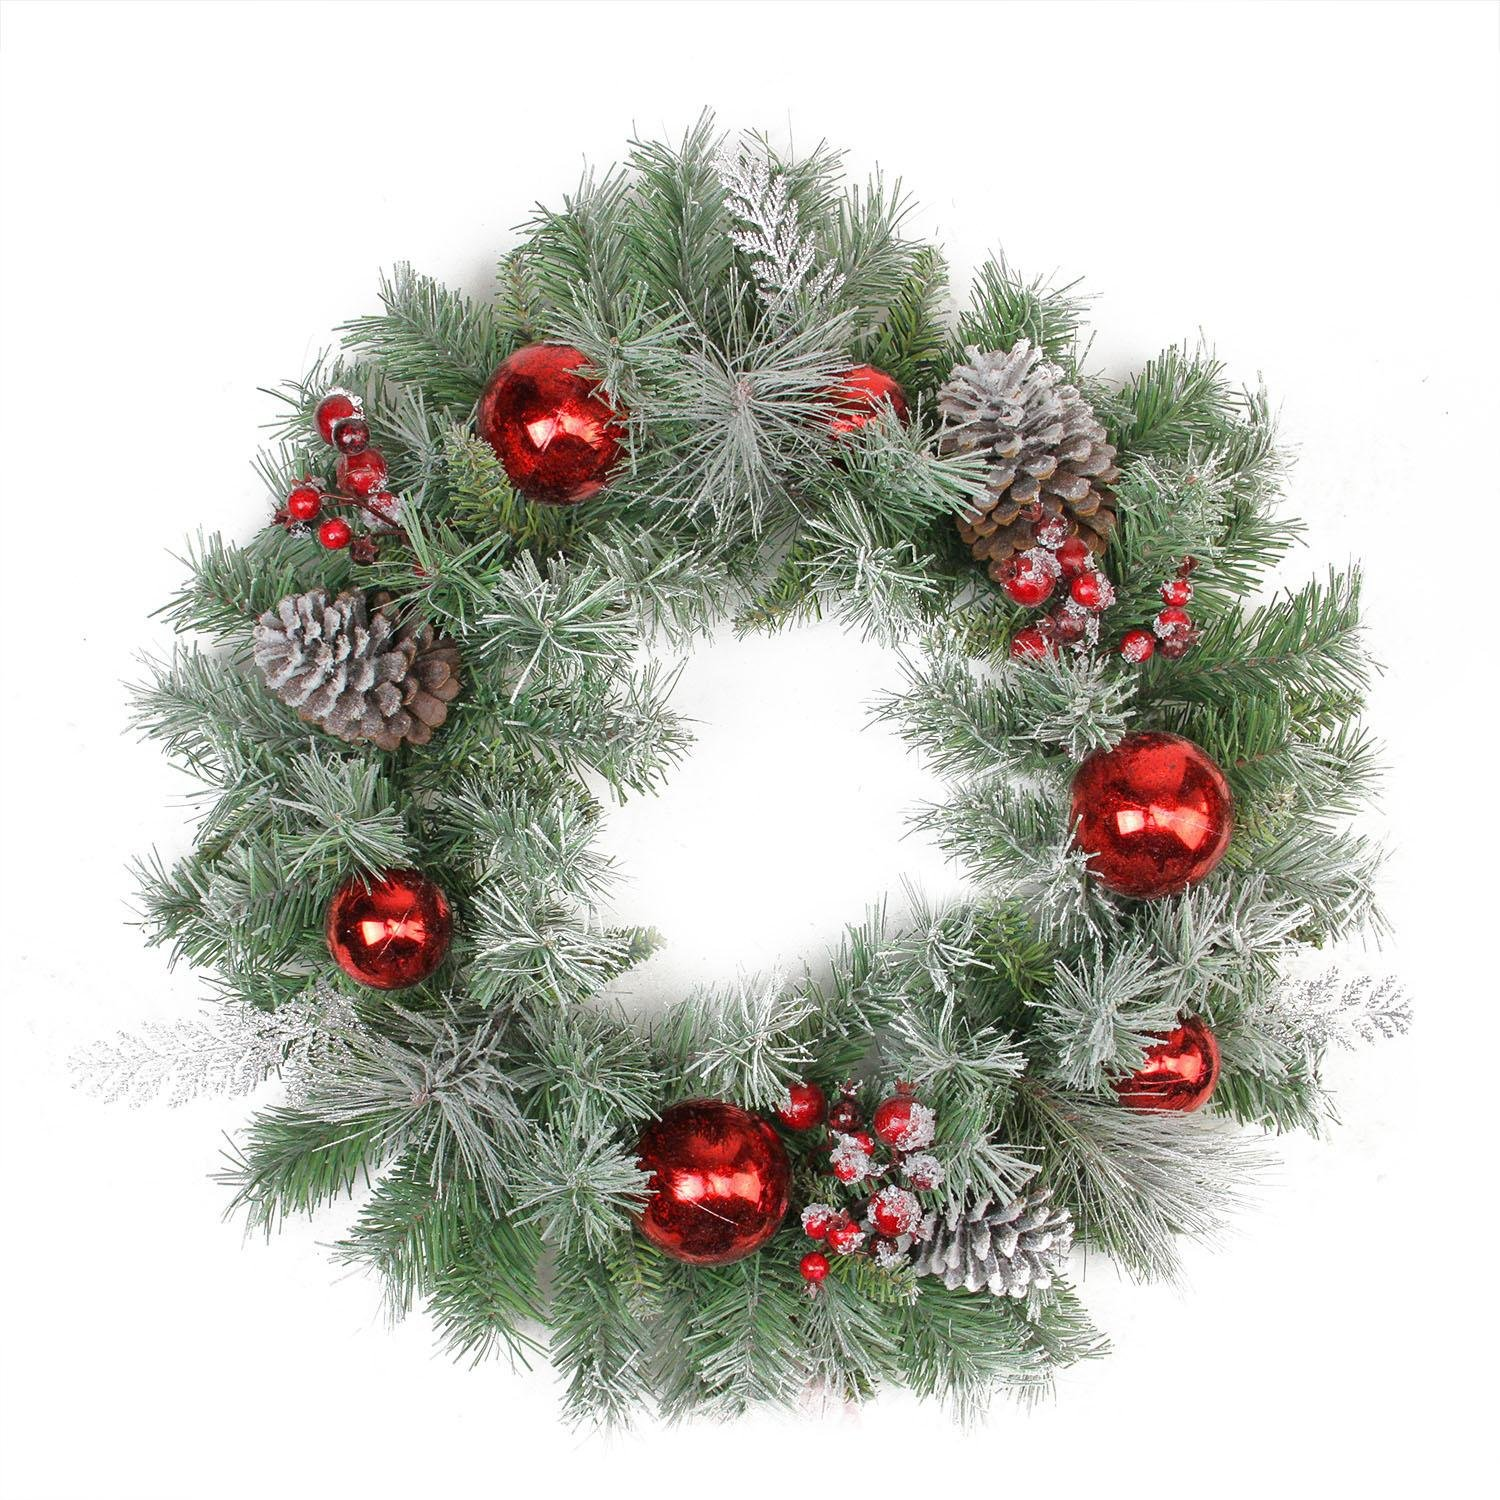 Artificial Flocked Pine and Silver Cedar Christmas  Wreath with Red Ball & Berries